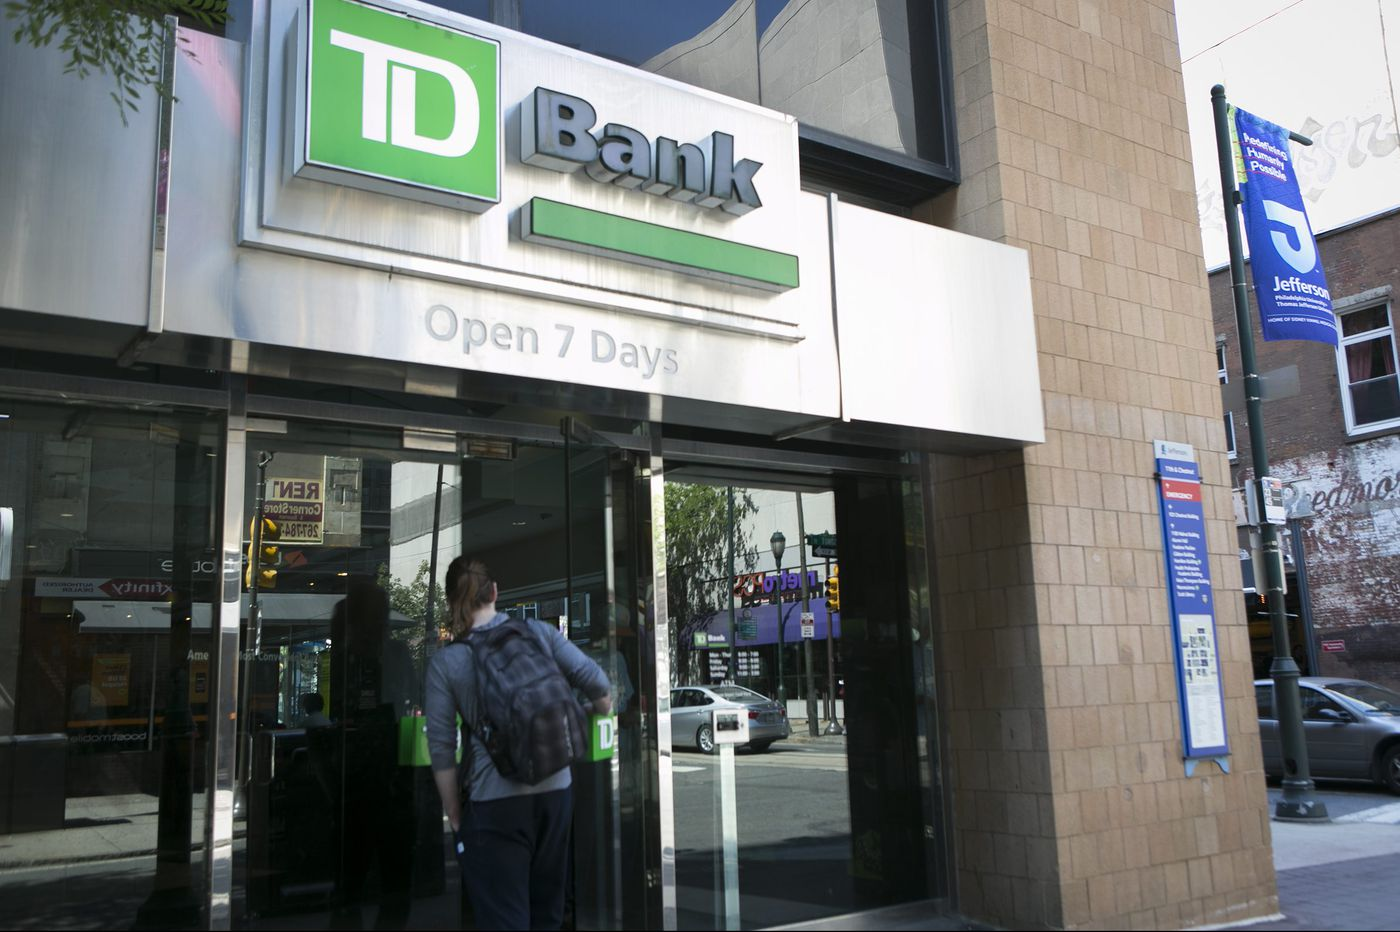 TD Bank customers feel short-changed by 'Penny Arcade' settlement